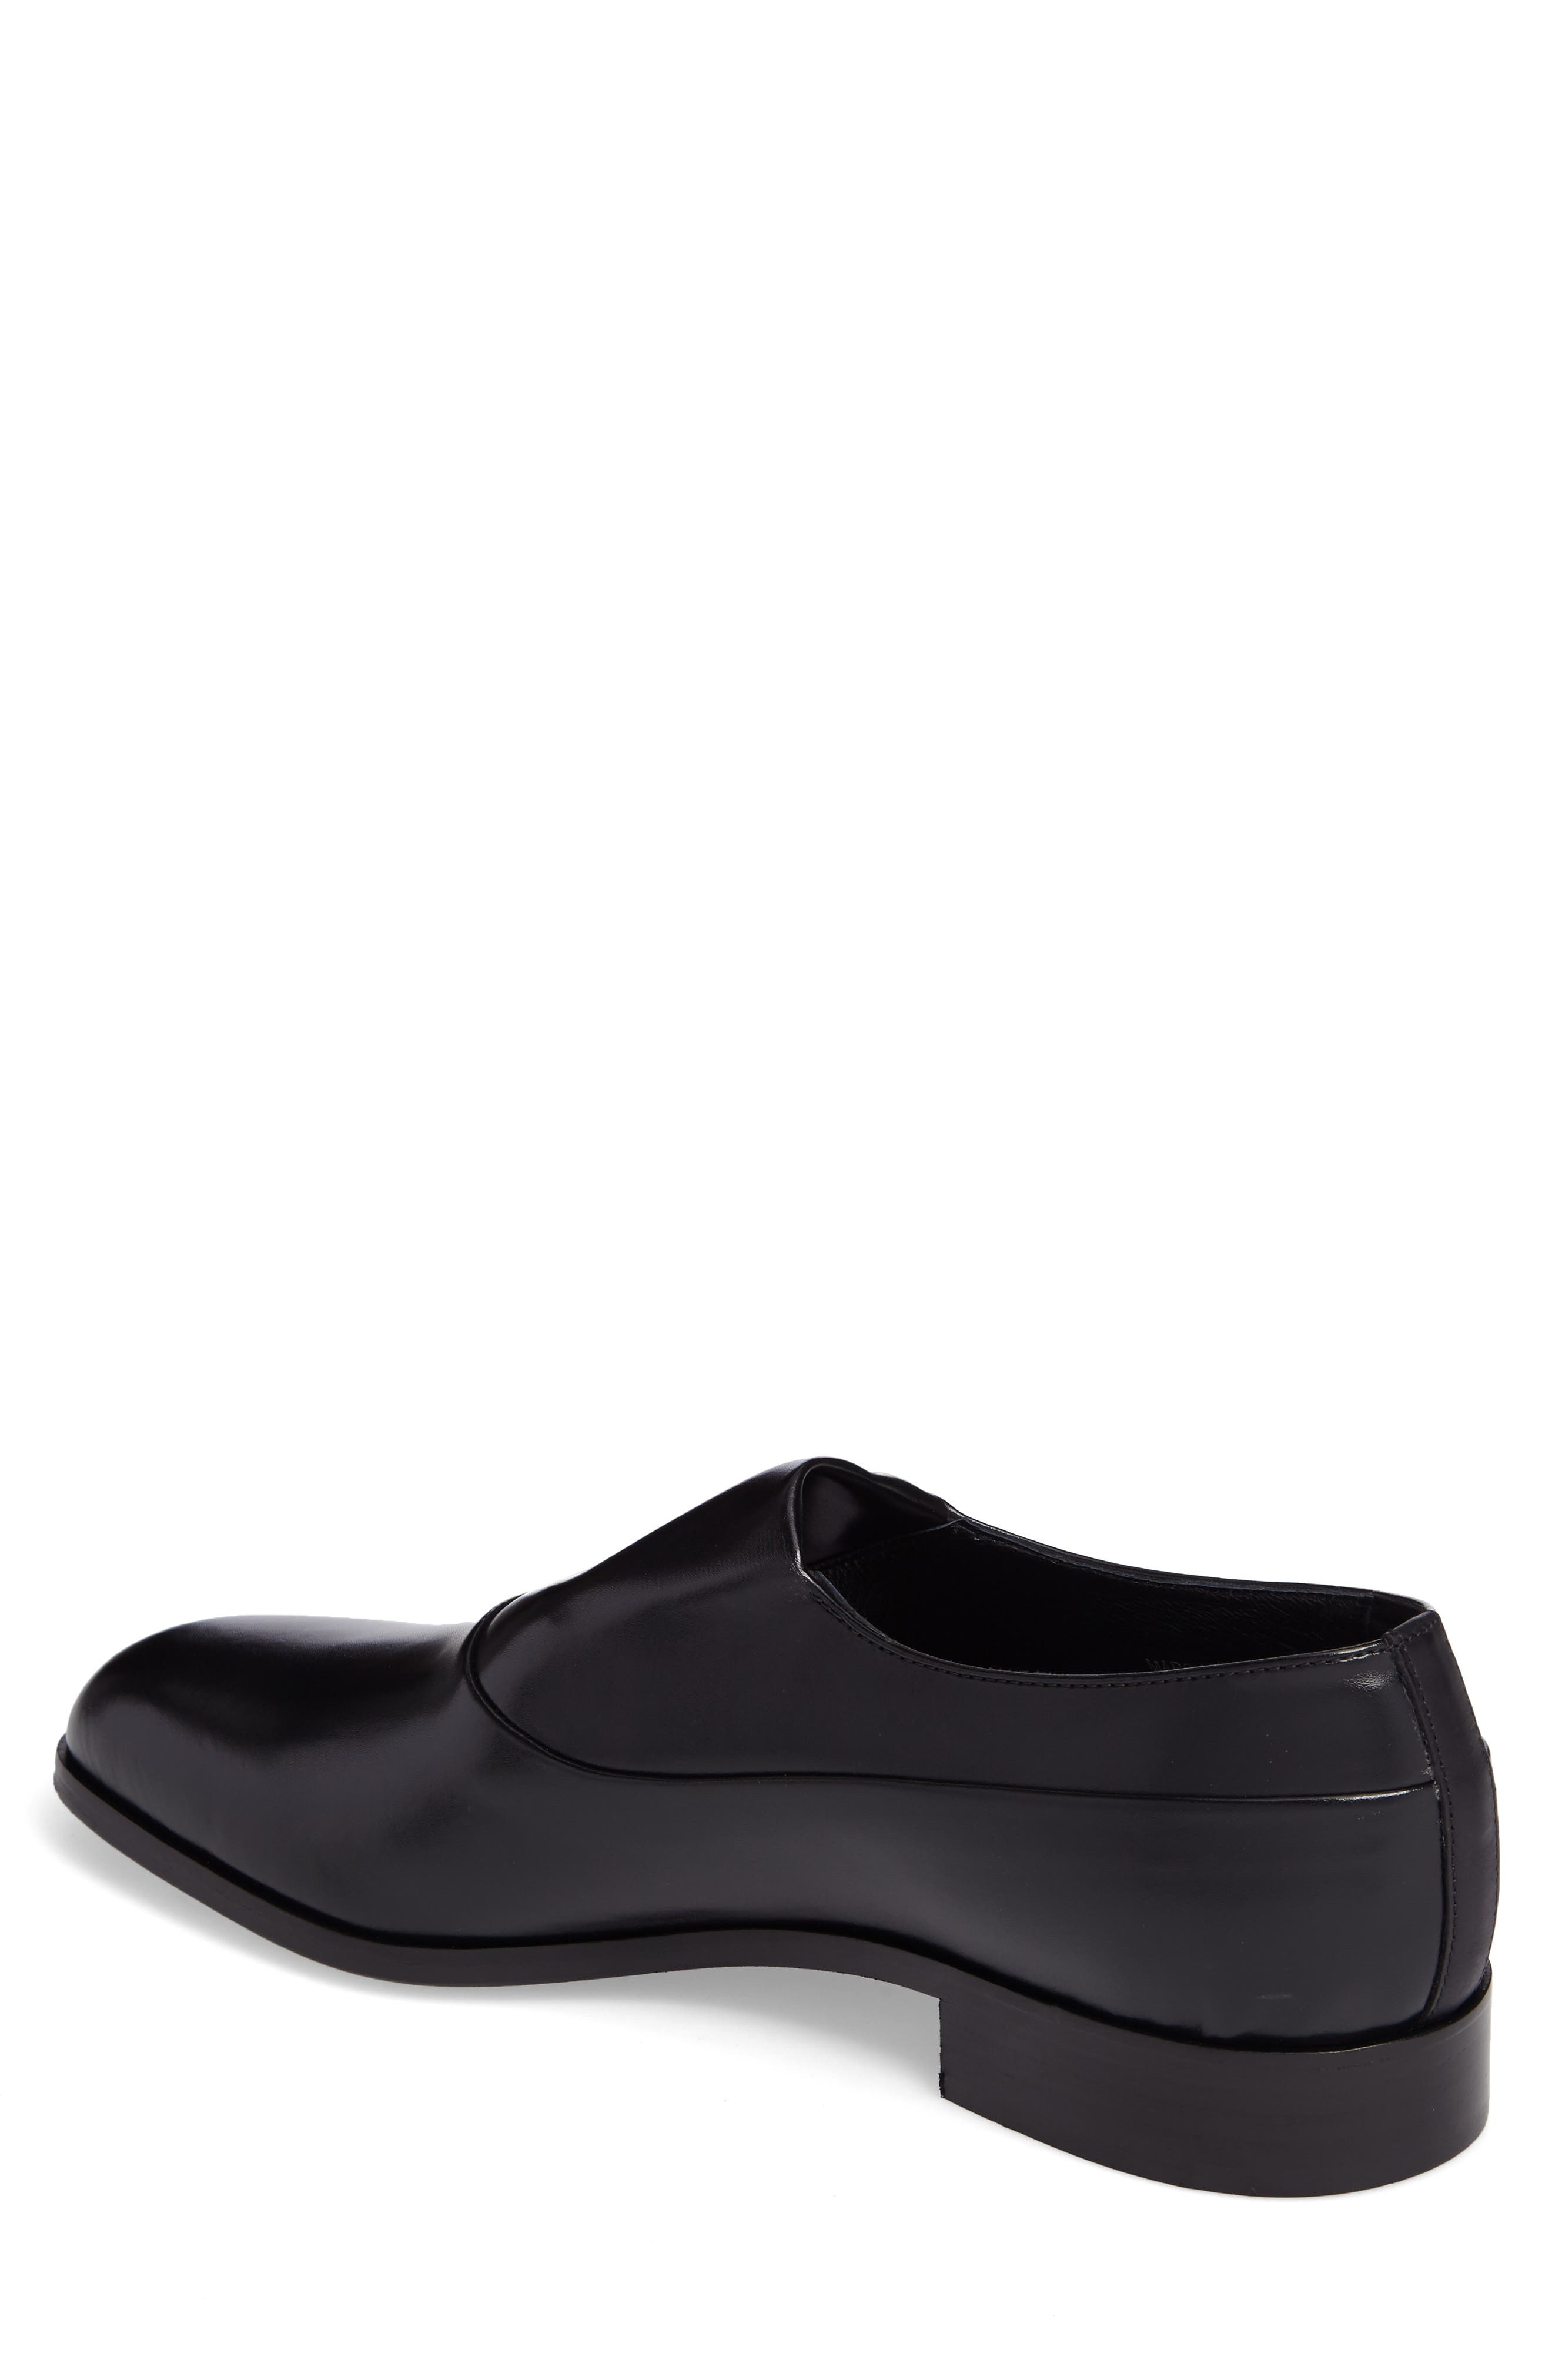 Marcio Venetian Loafer,                             Alternate thumbnail 2, color,                             002